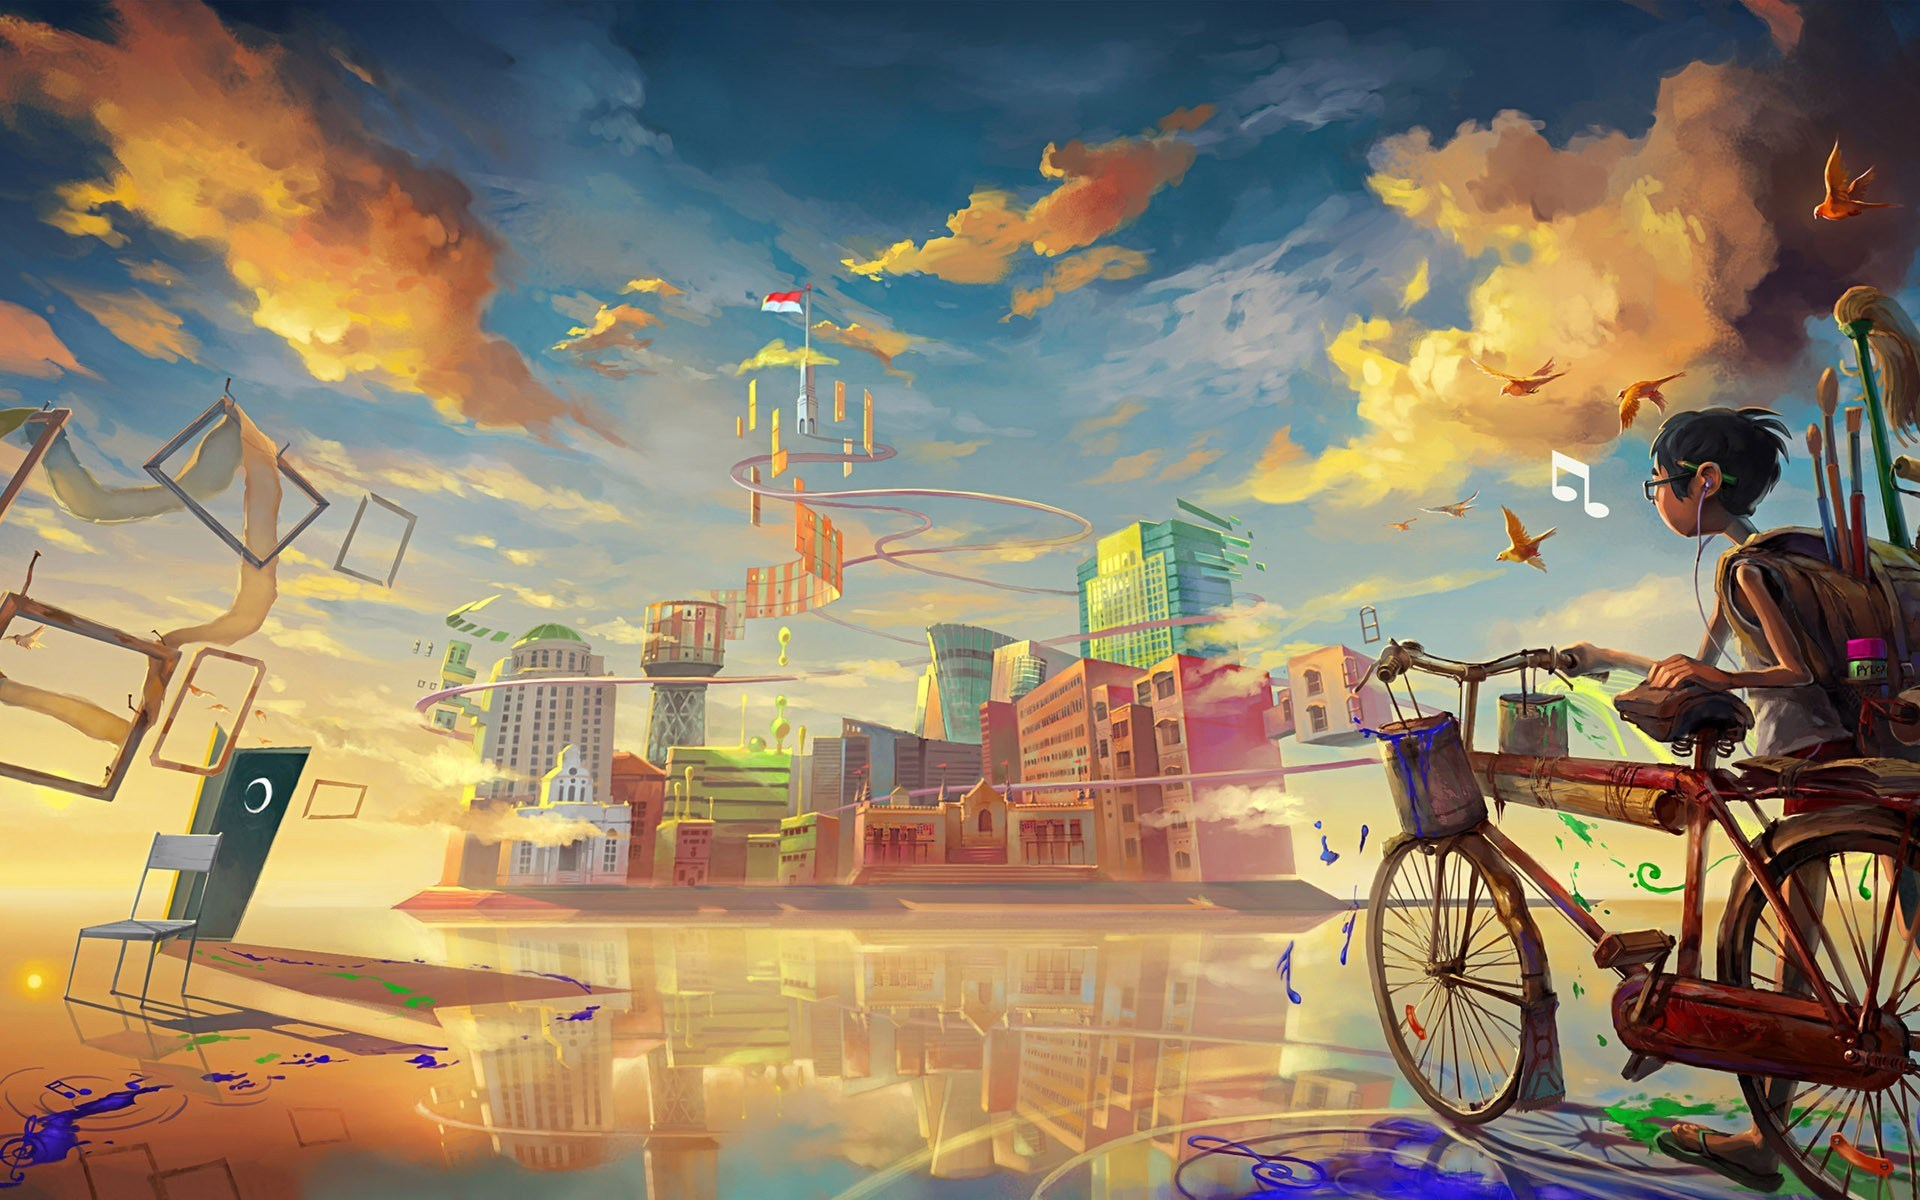 boy-bicycle-city-drawing-paint-art-wallpaper-hd | wallpaper.wiki